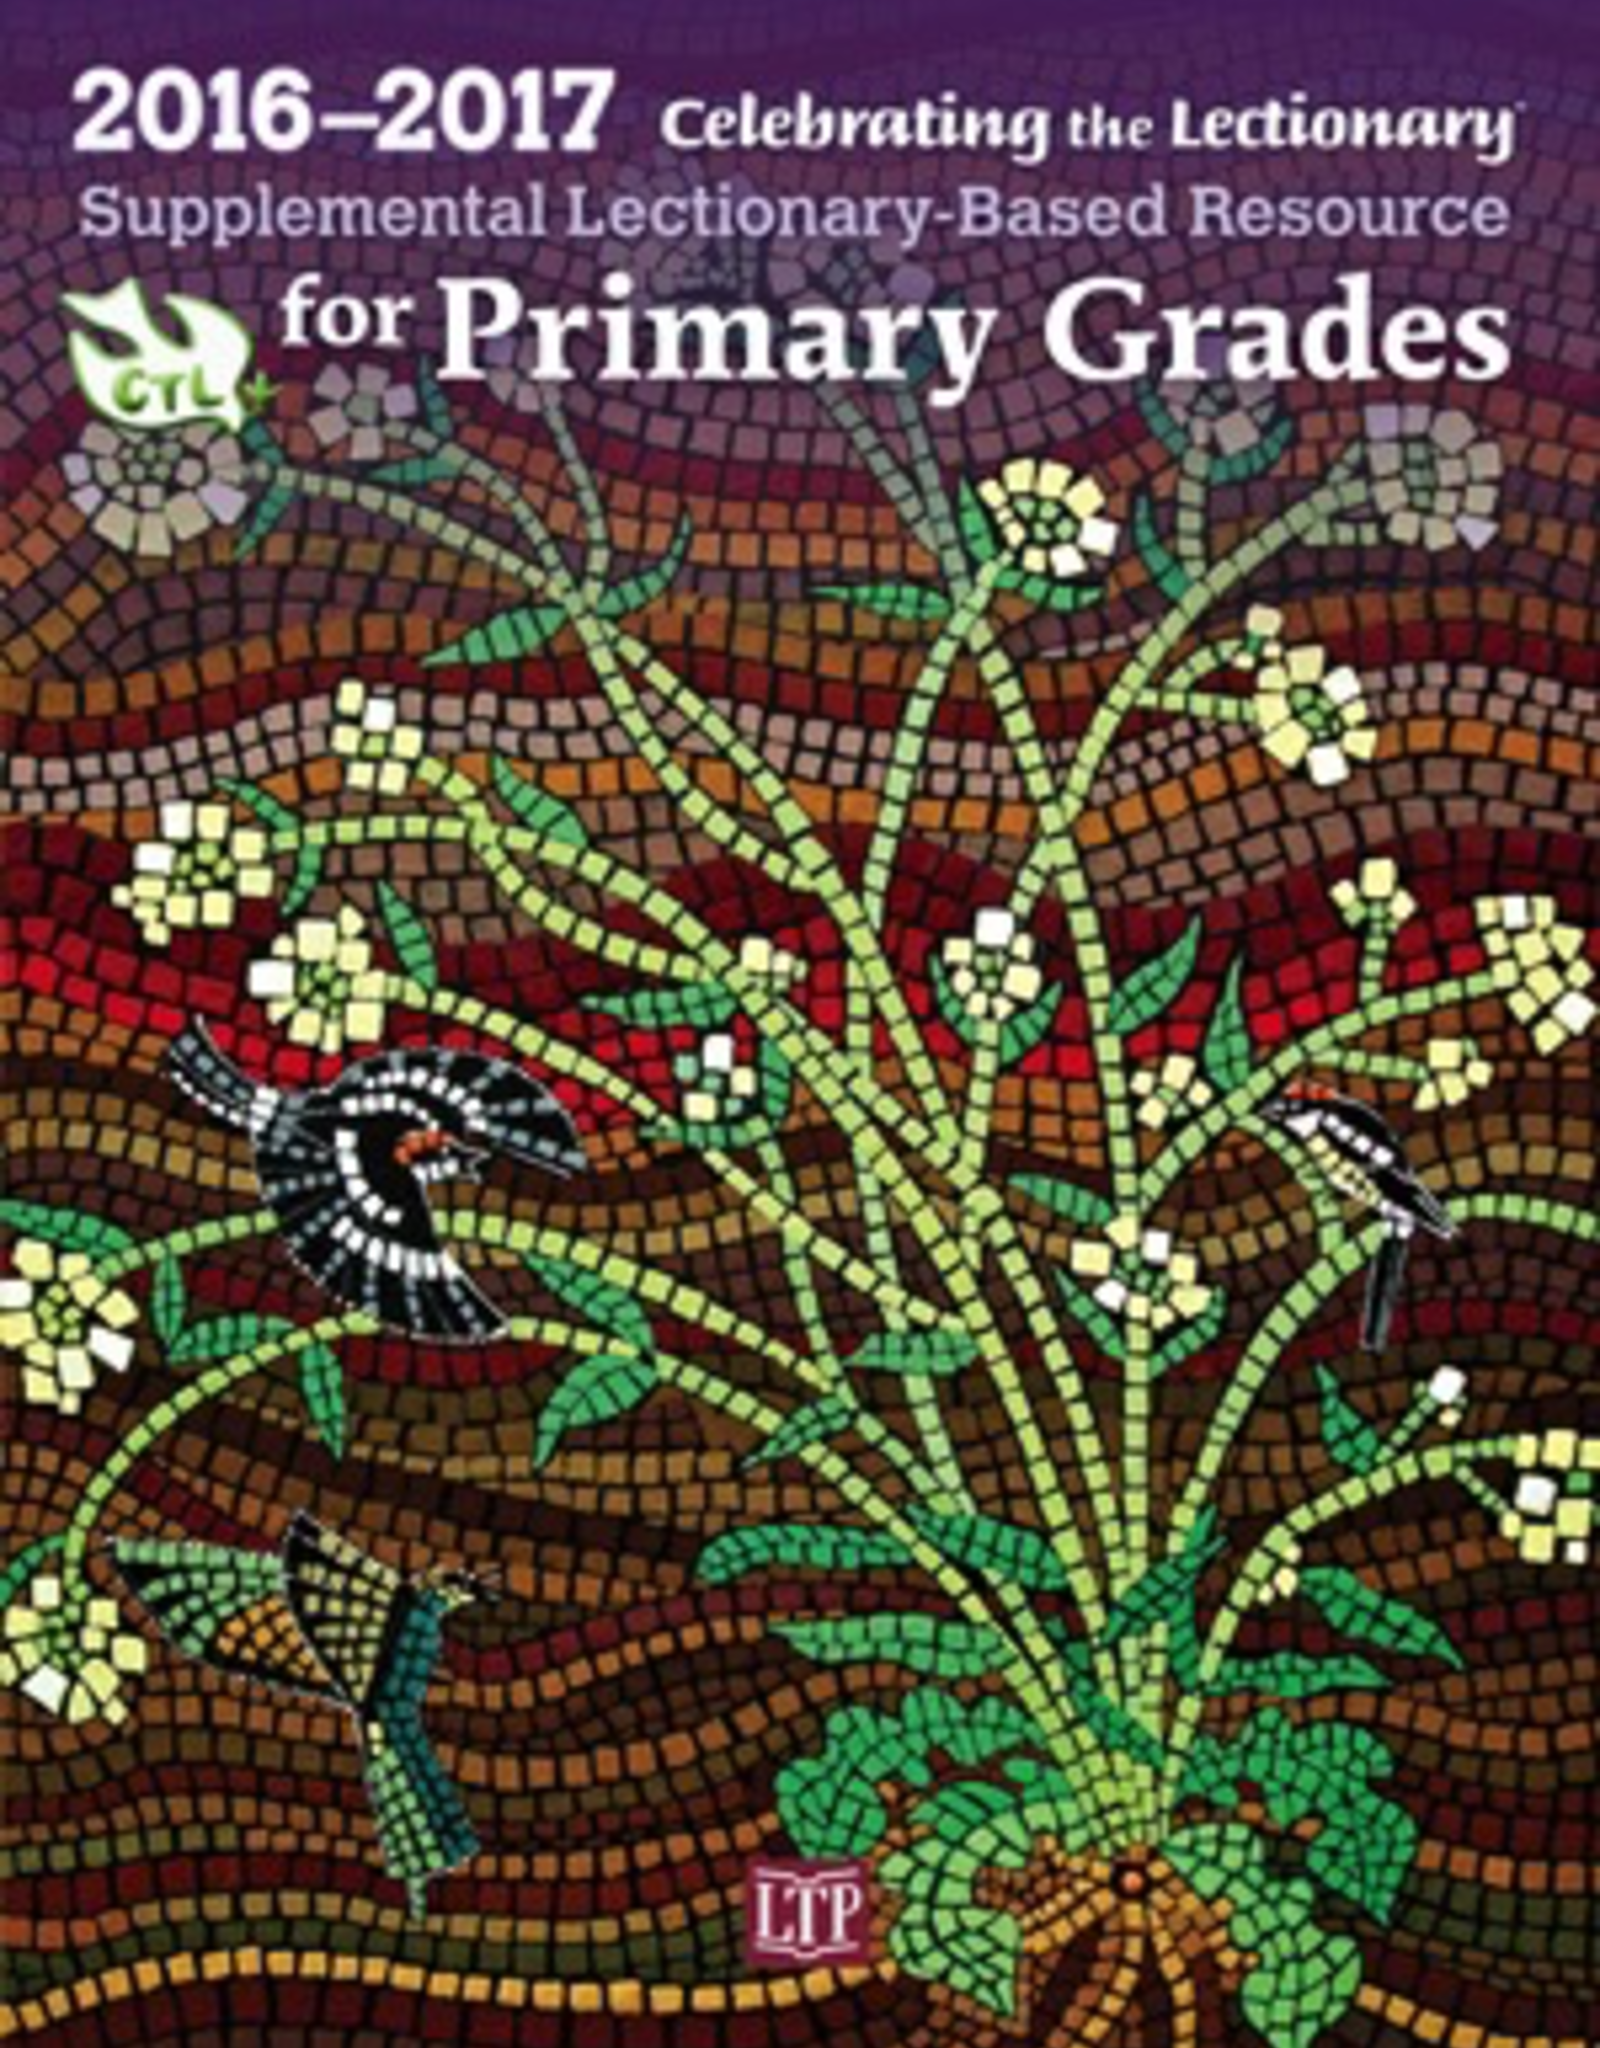 Liturgical Training Press Celebrating the Lectionary® for Primary Grades 2016-2017: Supplemental Lectionary-Based Resource, by  Lisa Mersereau (paperback w/ disk)